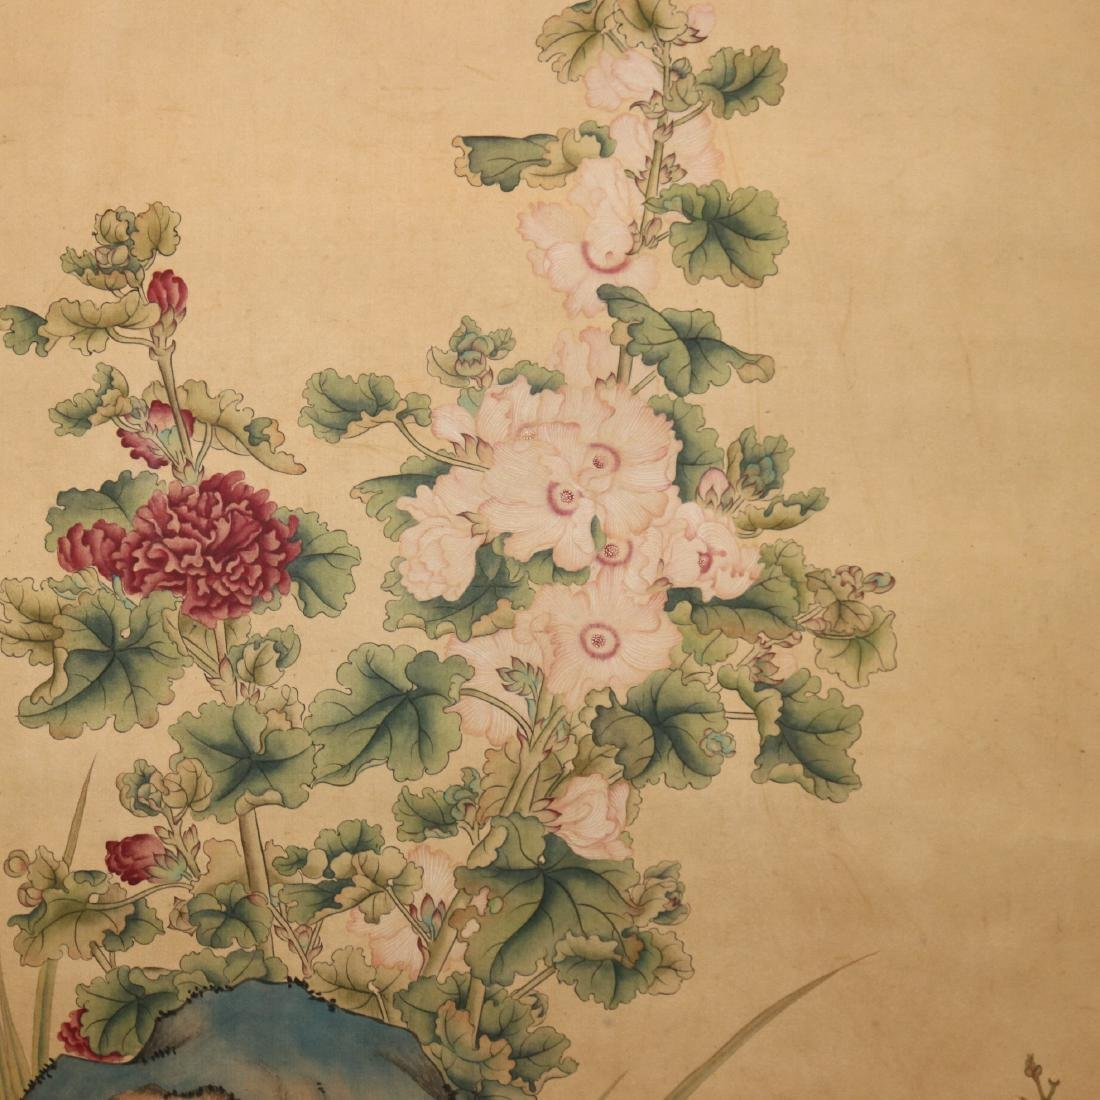 A Chinese Ink and Color Scrolling Painting Lang Shining - 6